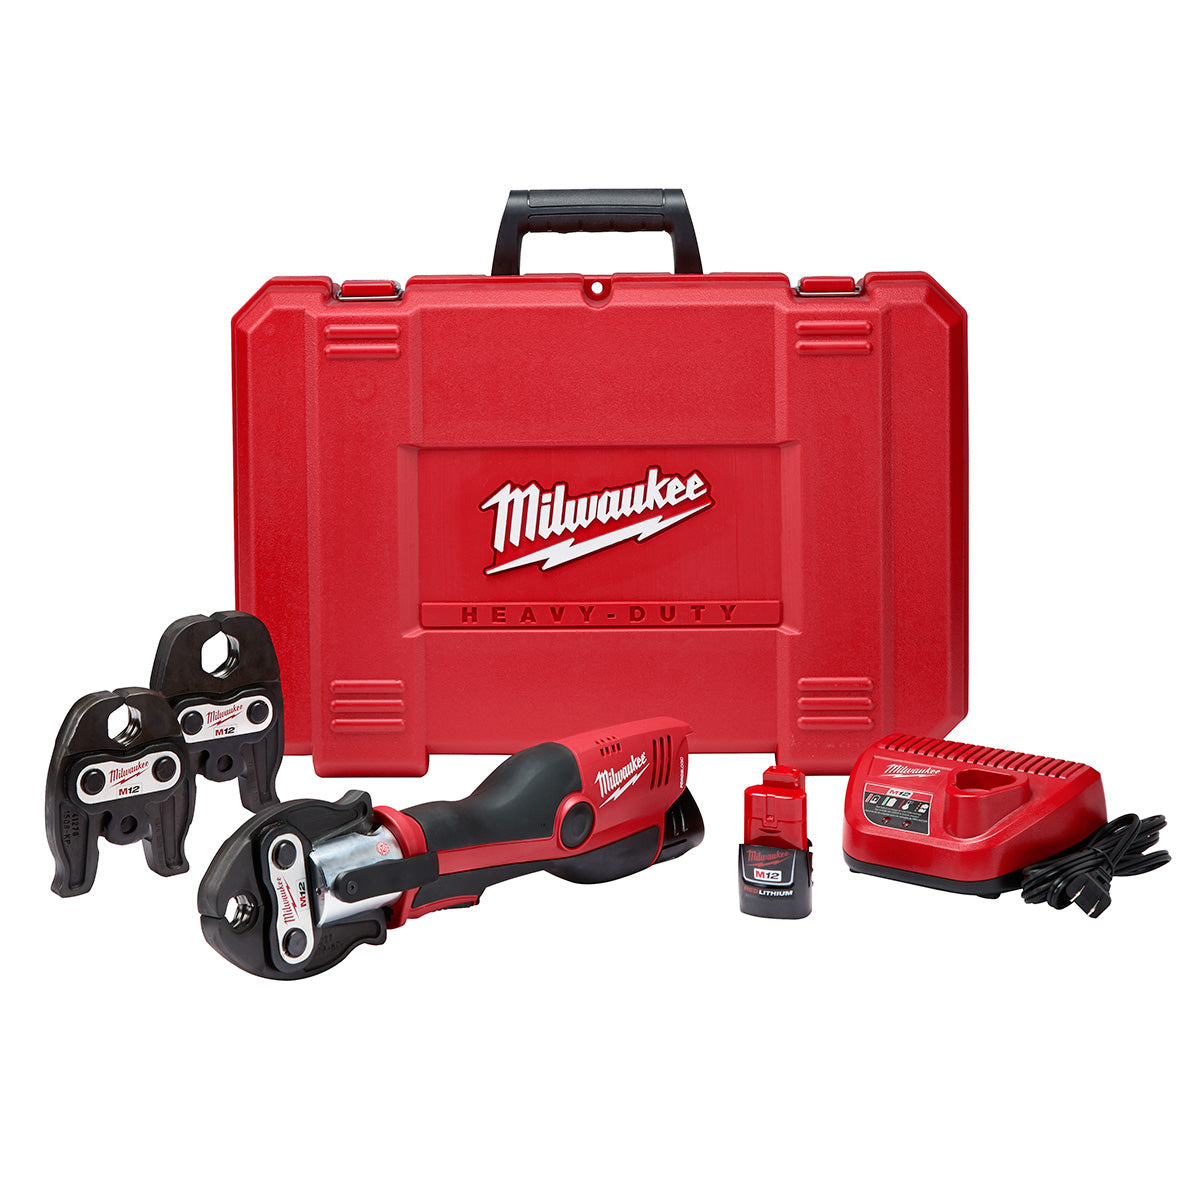 Milwaukee M12 Force Logic Cordless Press Tool Kit 2473-22 With 3 Pc Jaw Set